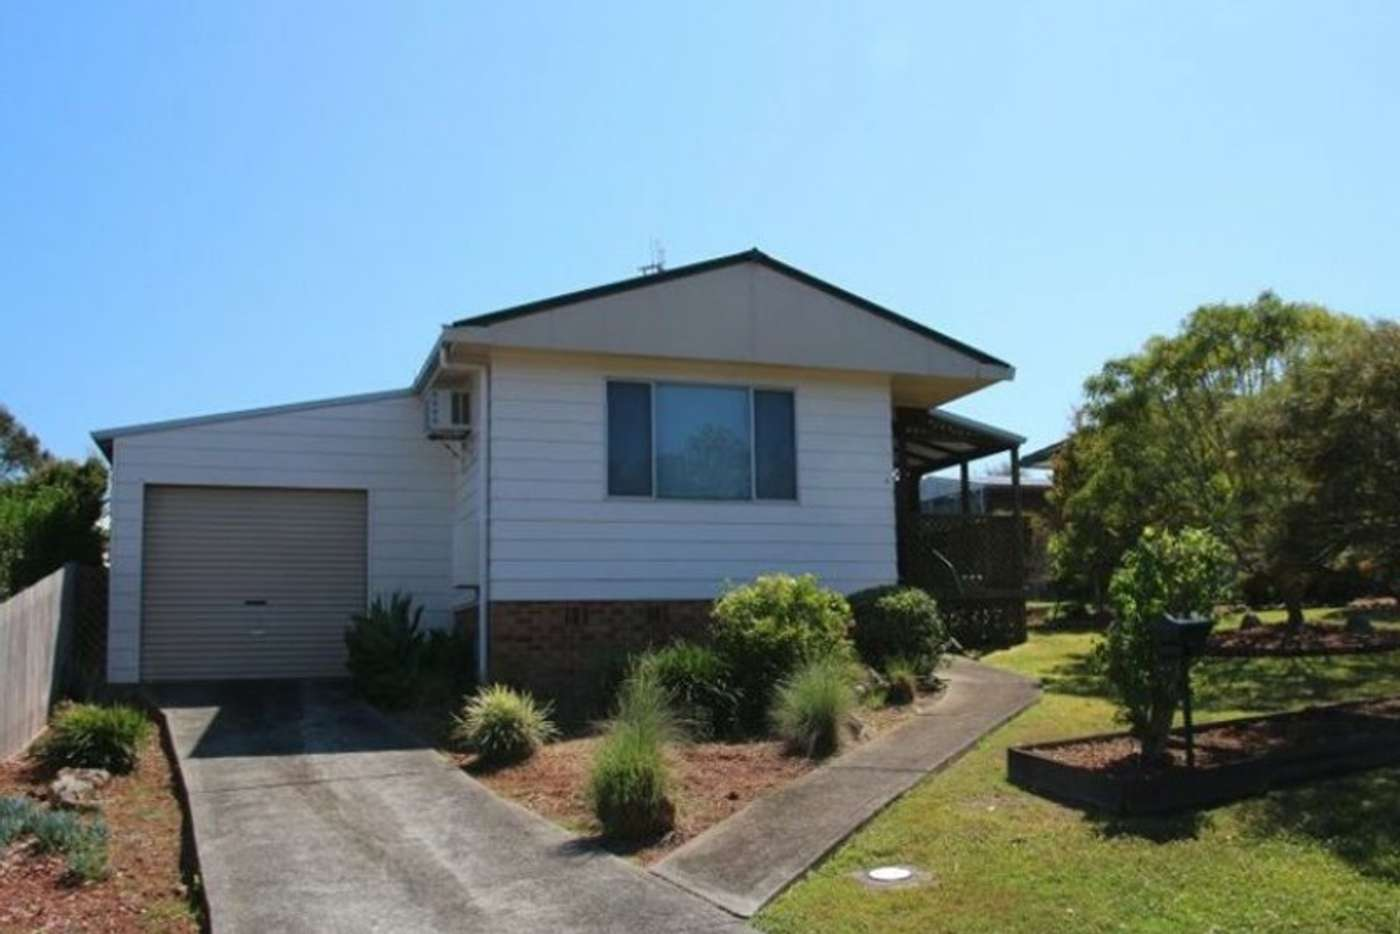 Main view of Homely house listing, 6 Gollan Street, Wingham NSW 2429